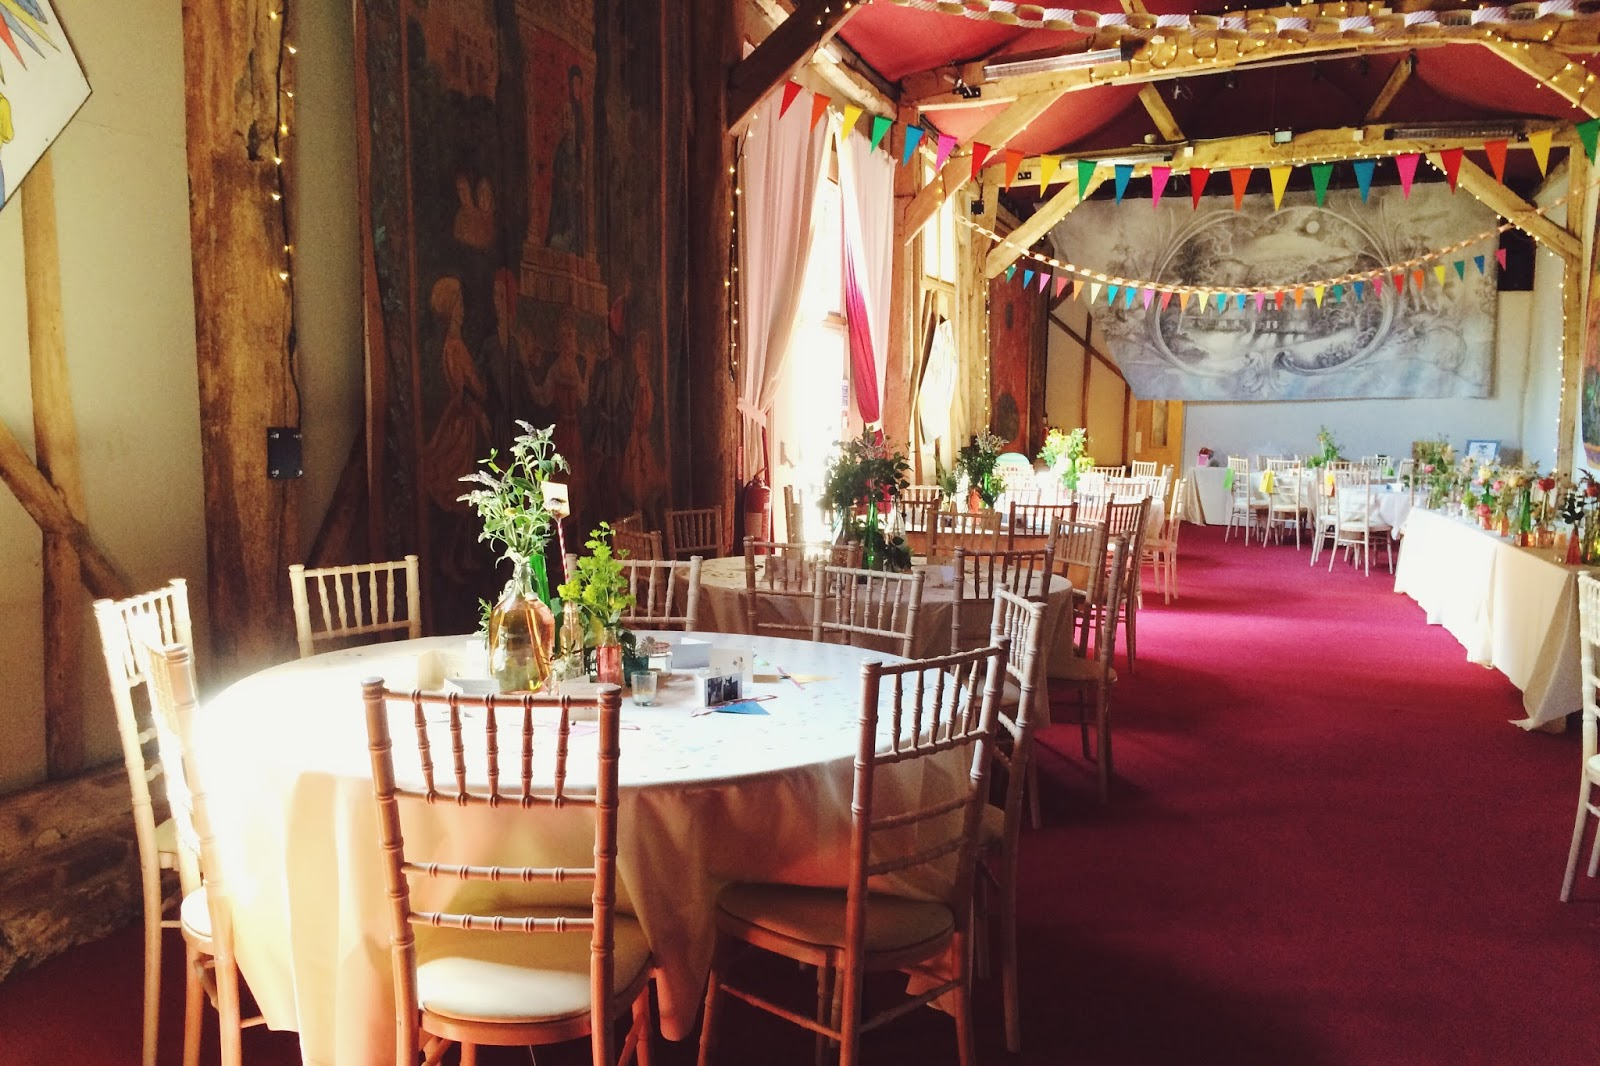 Wedding decorations - rustic style, Combe Manor